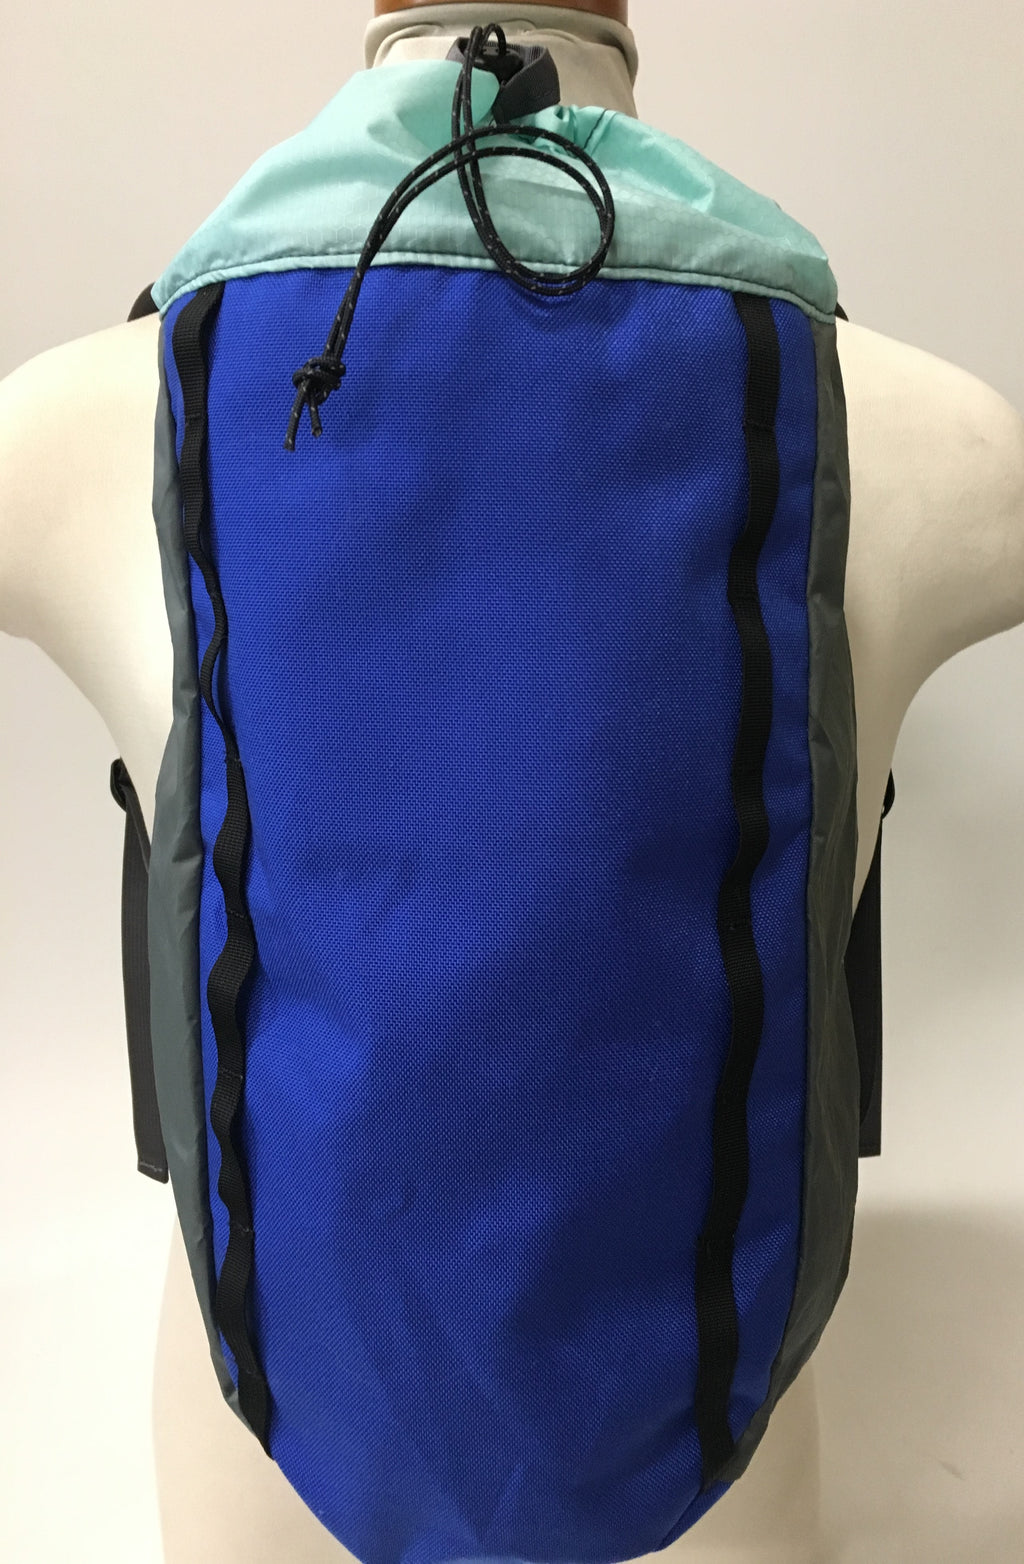 LUSB171 Ultralight Day Pack Blue/Grey